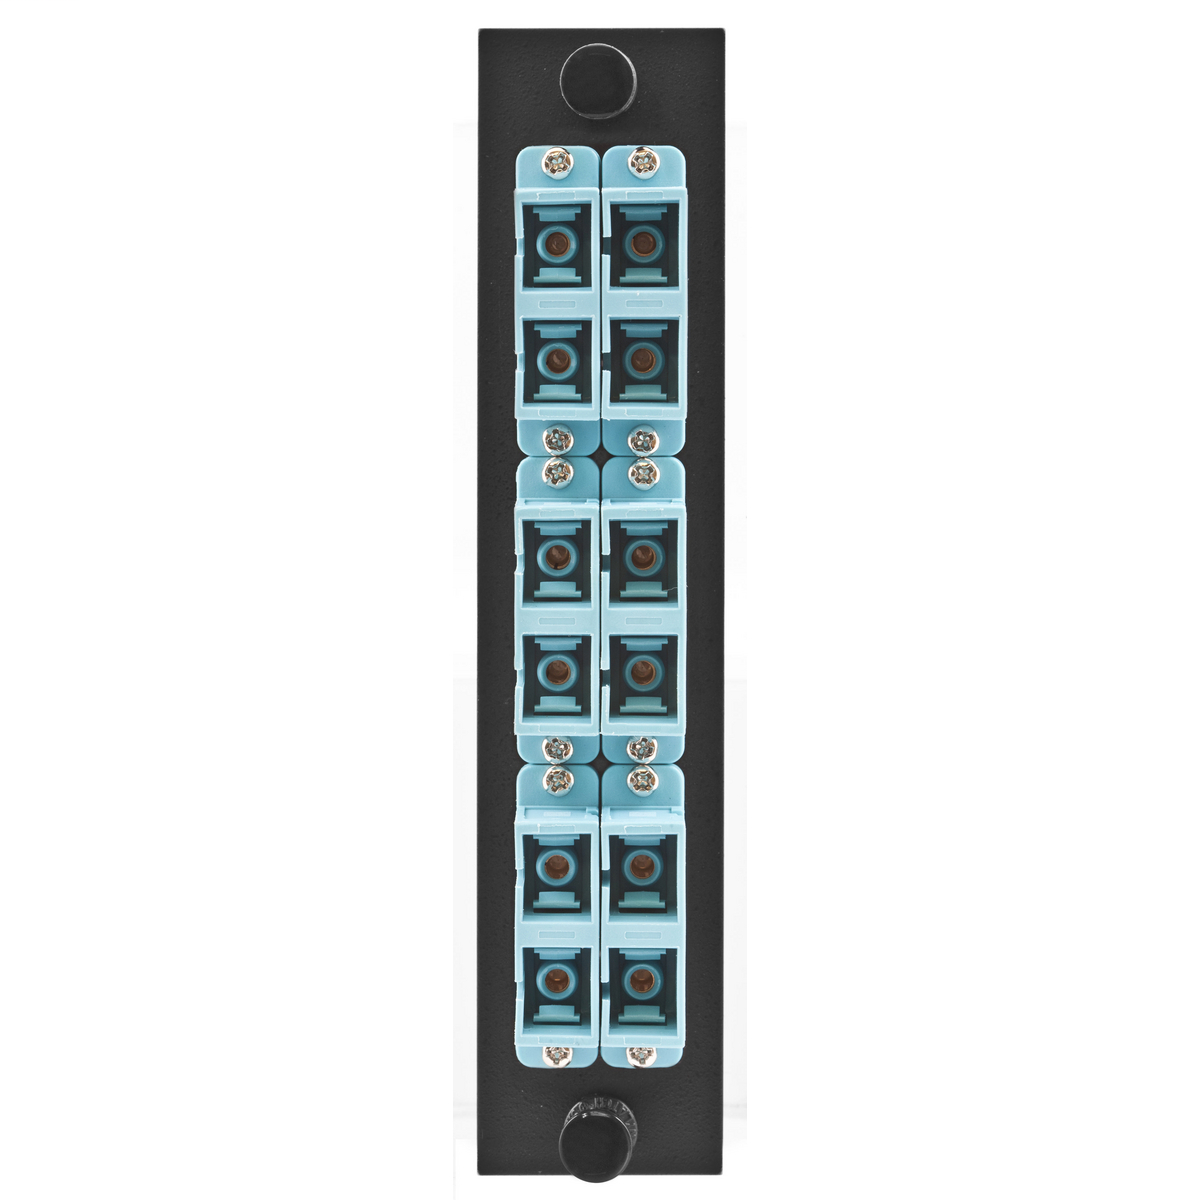 Hubbell Premise Wiring Products, FSP Adapter Panel, 6-Fiber, SC Duplex,12-Port, Loaded with 6 Adapters, Phosphor Bronze, Aqua